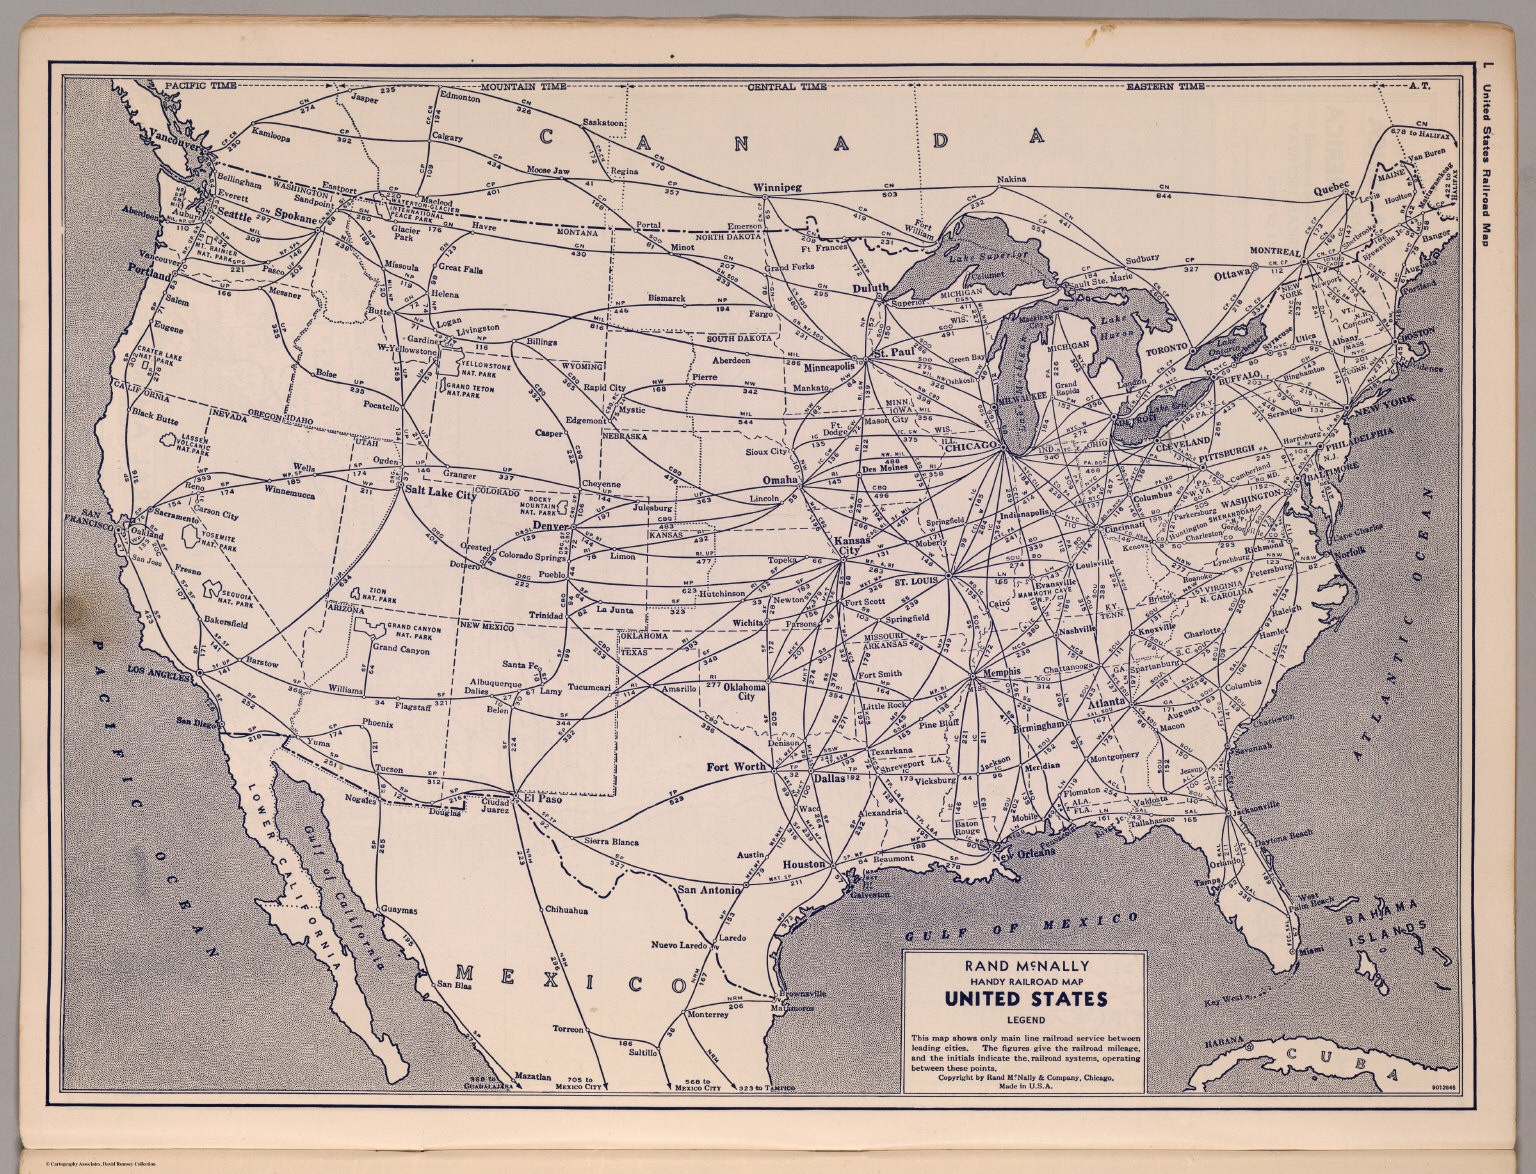 United States Railroad map David Rumsey Historical Map Collection